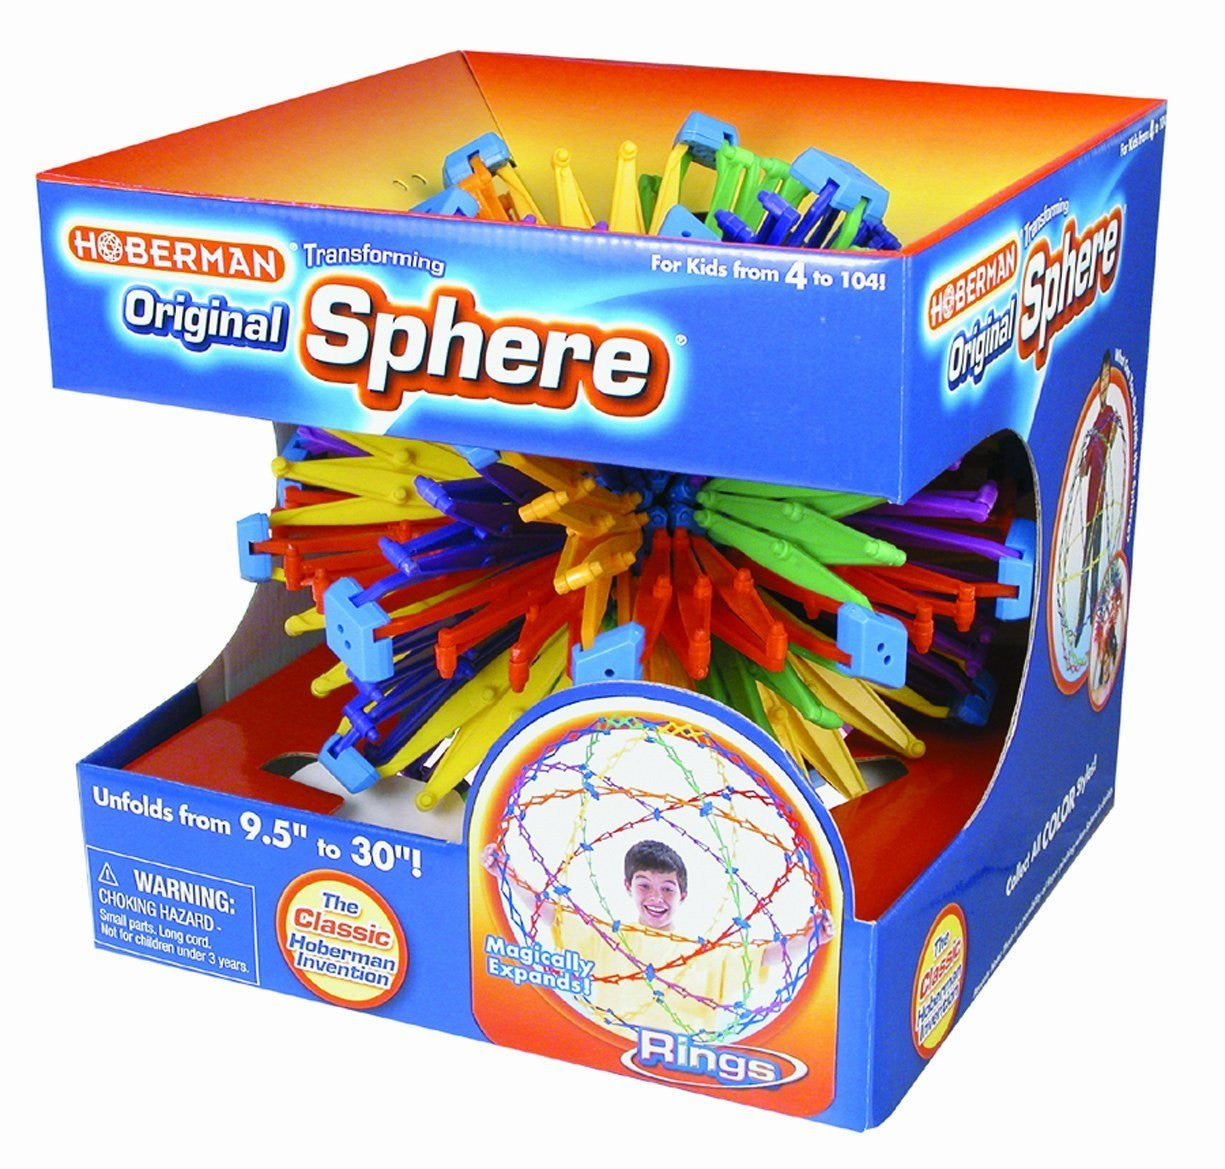 Hoberman Sphere RINGS - Large Transforming  Polyhedral Toy - Expands 9.5 to 30in - Off The Wall Toys and Gifts